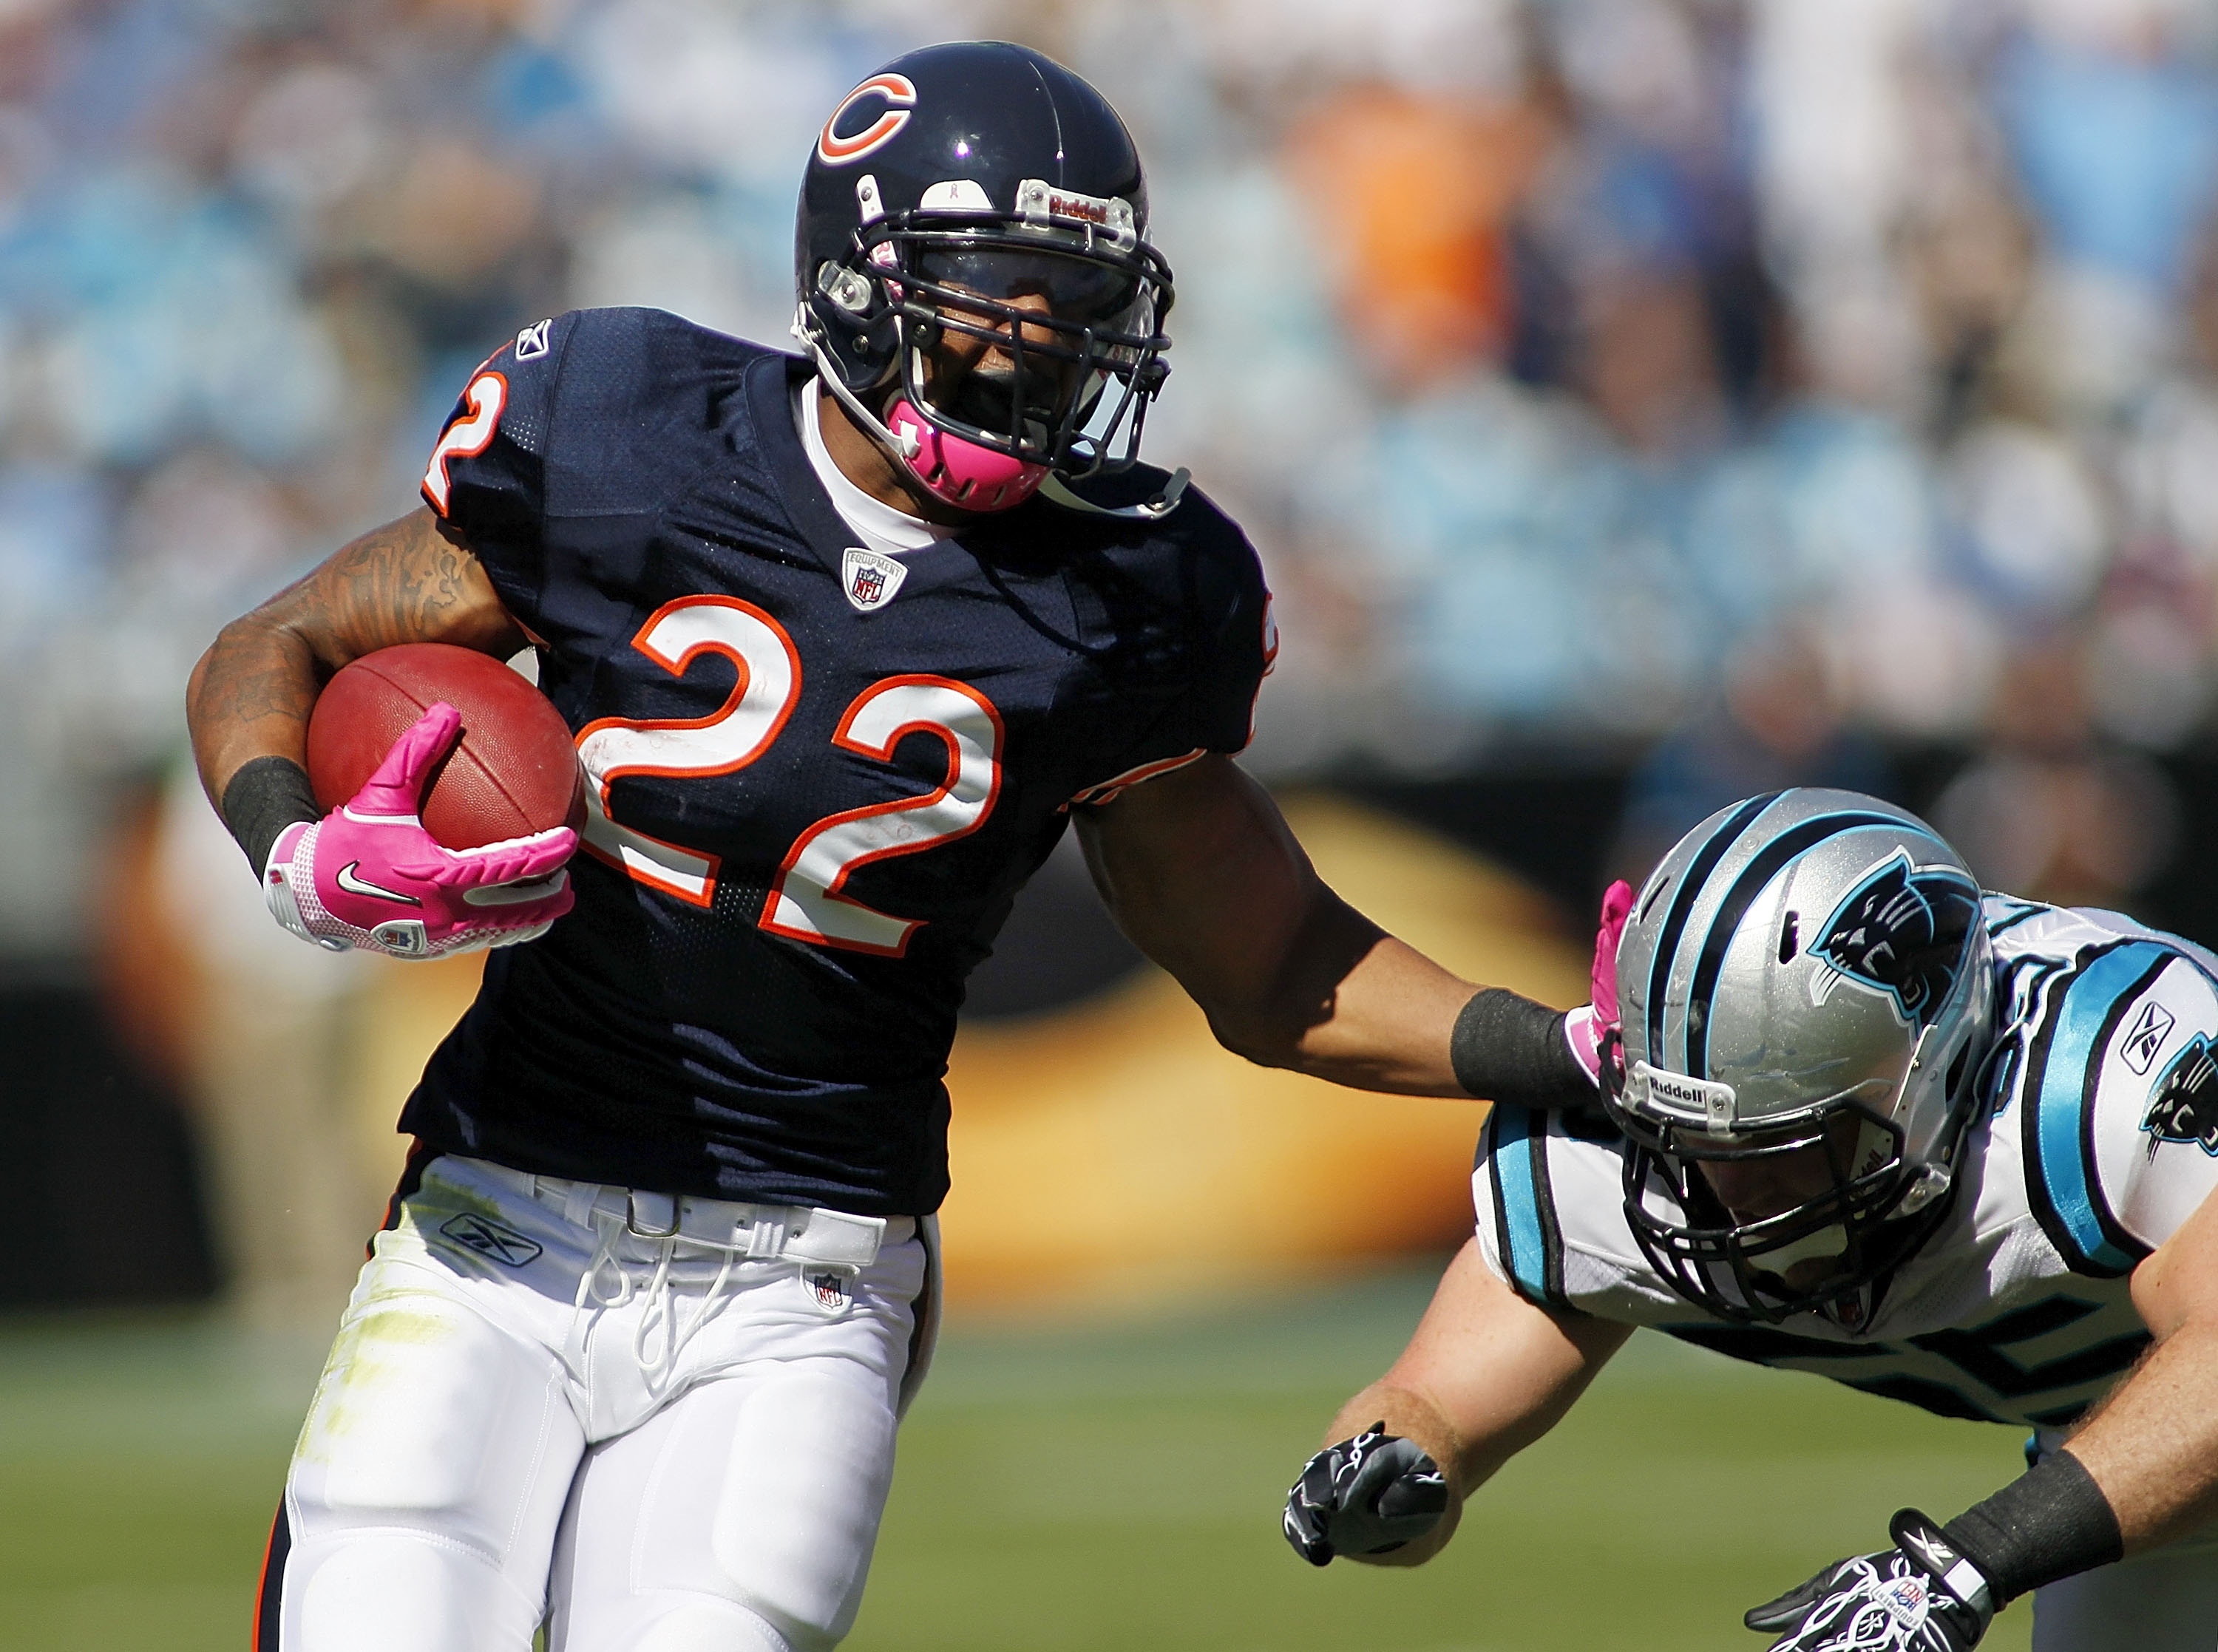 CHARLOTTE, NC - OCTOBER 10: Running back Matt Forte #22 of the Chicago Bears runs past linebacker Dan Connor #55 of the Carolina Panthers at Bank of America Stadium on October 10, 2010 in Charlotte, North Carolina. (Photo by Geoff Burke/Getty Images)